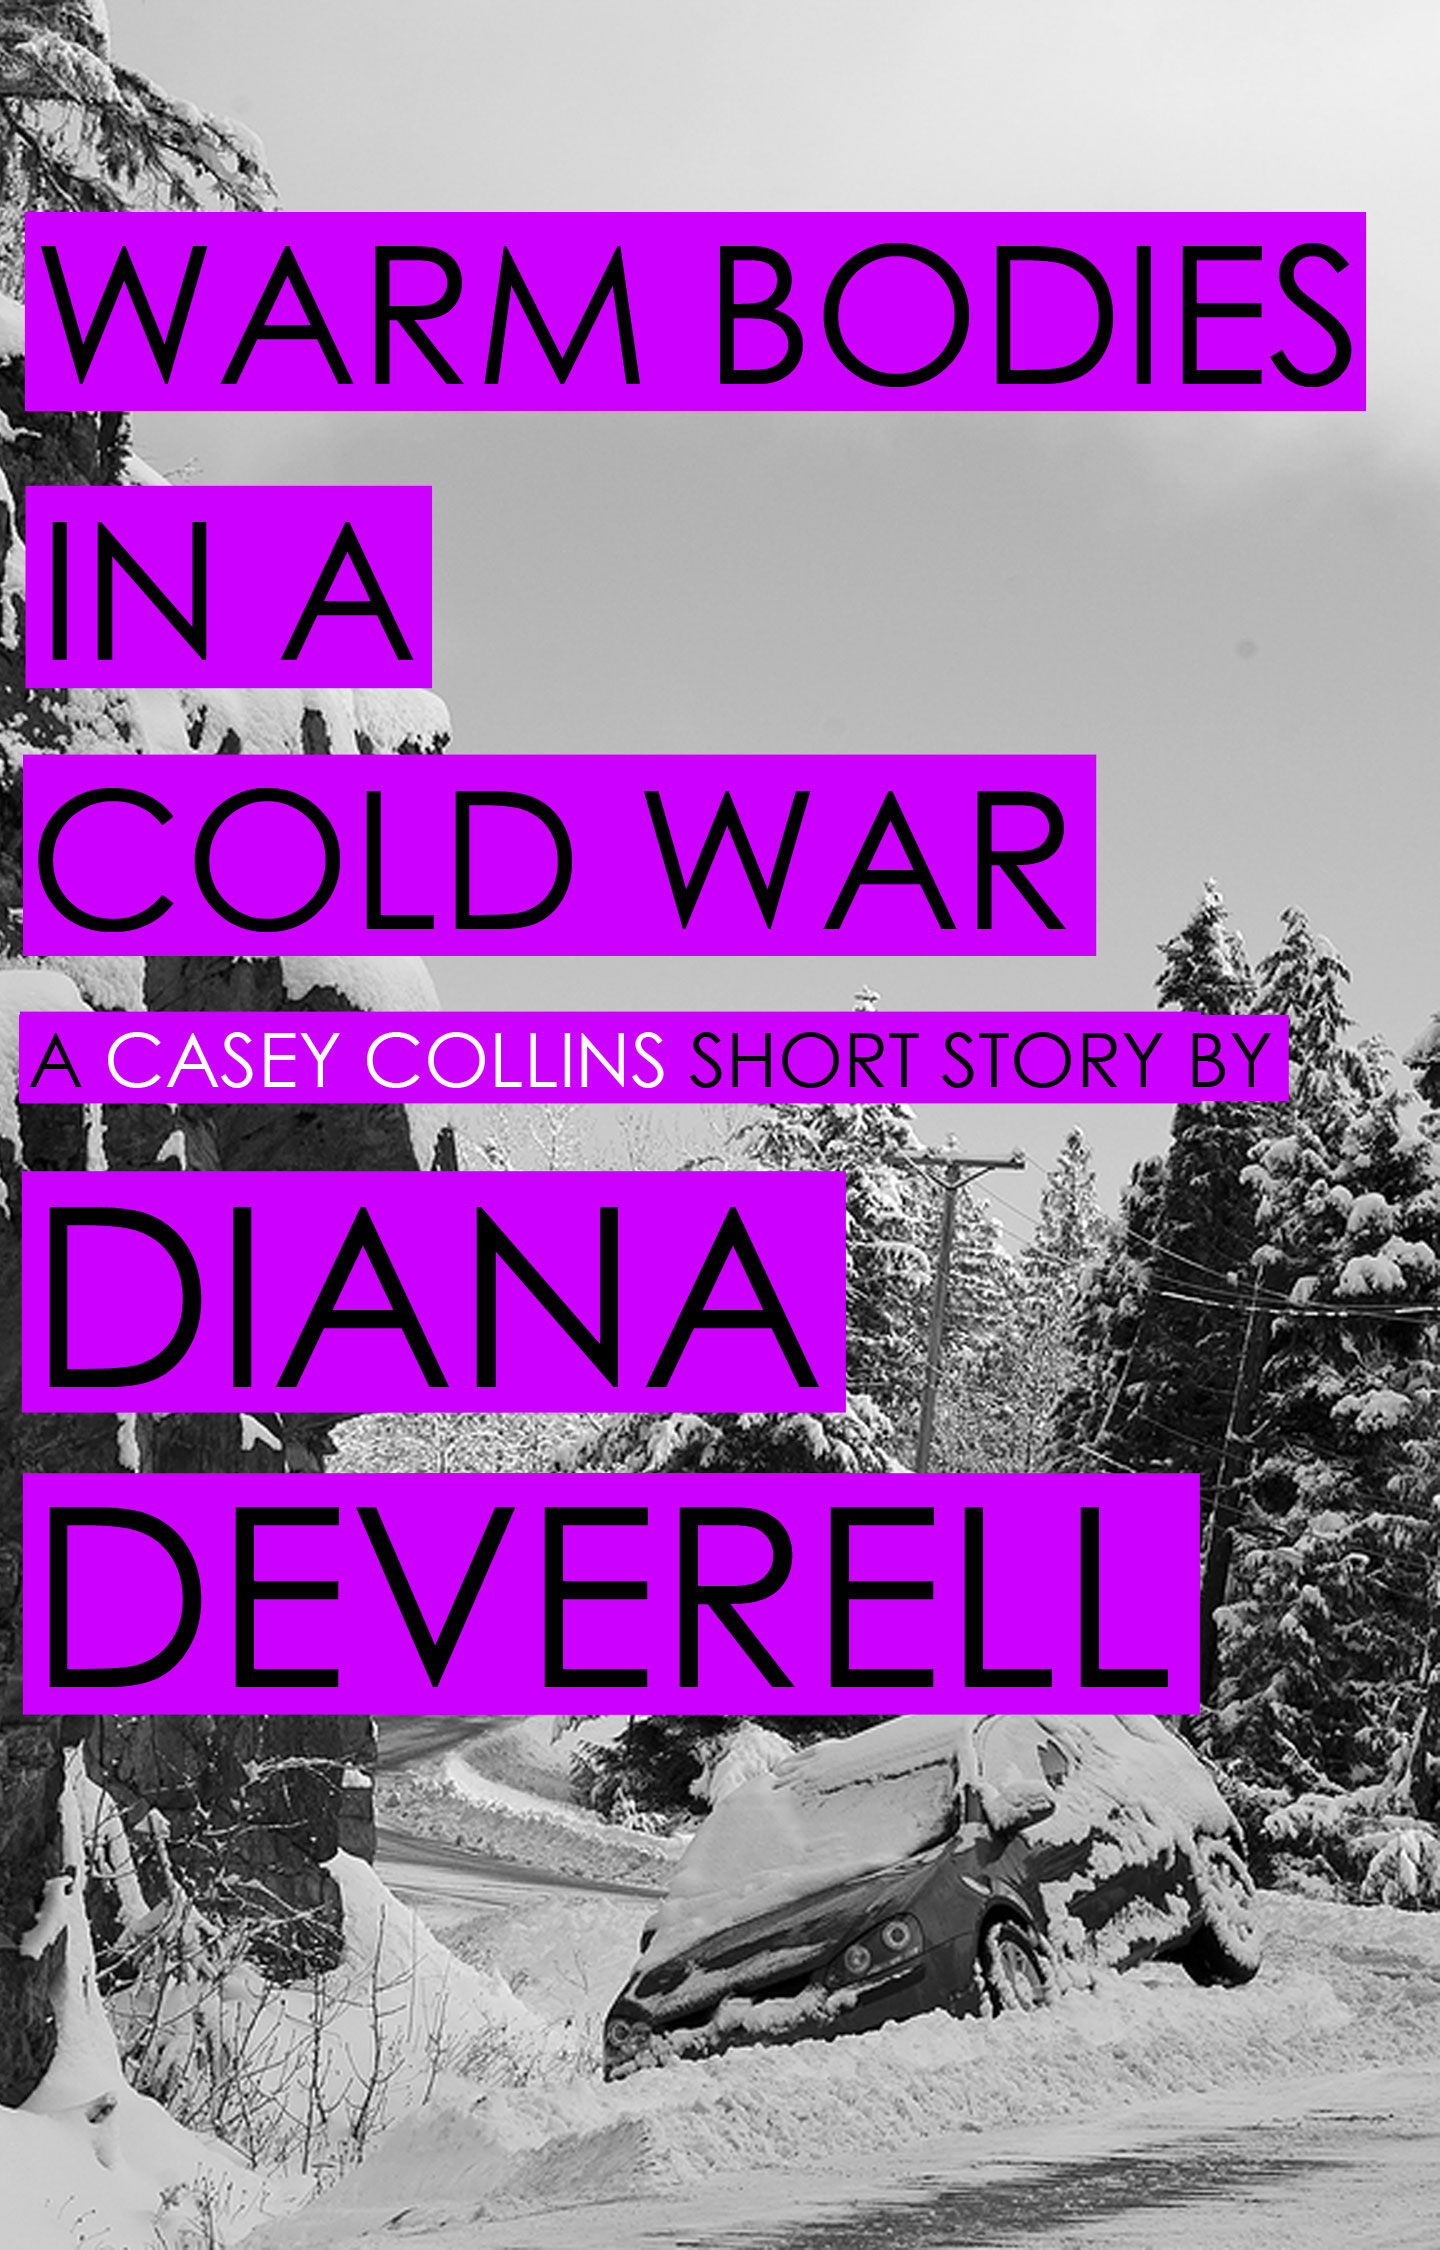 Warm Bodies in a Cold War - A Casey Collins Counterterrorism Thriller by Diana Deverell Book Cover